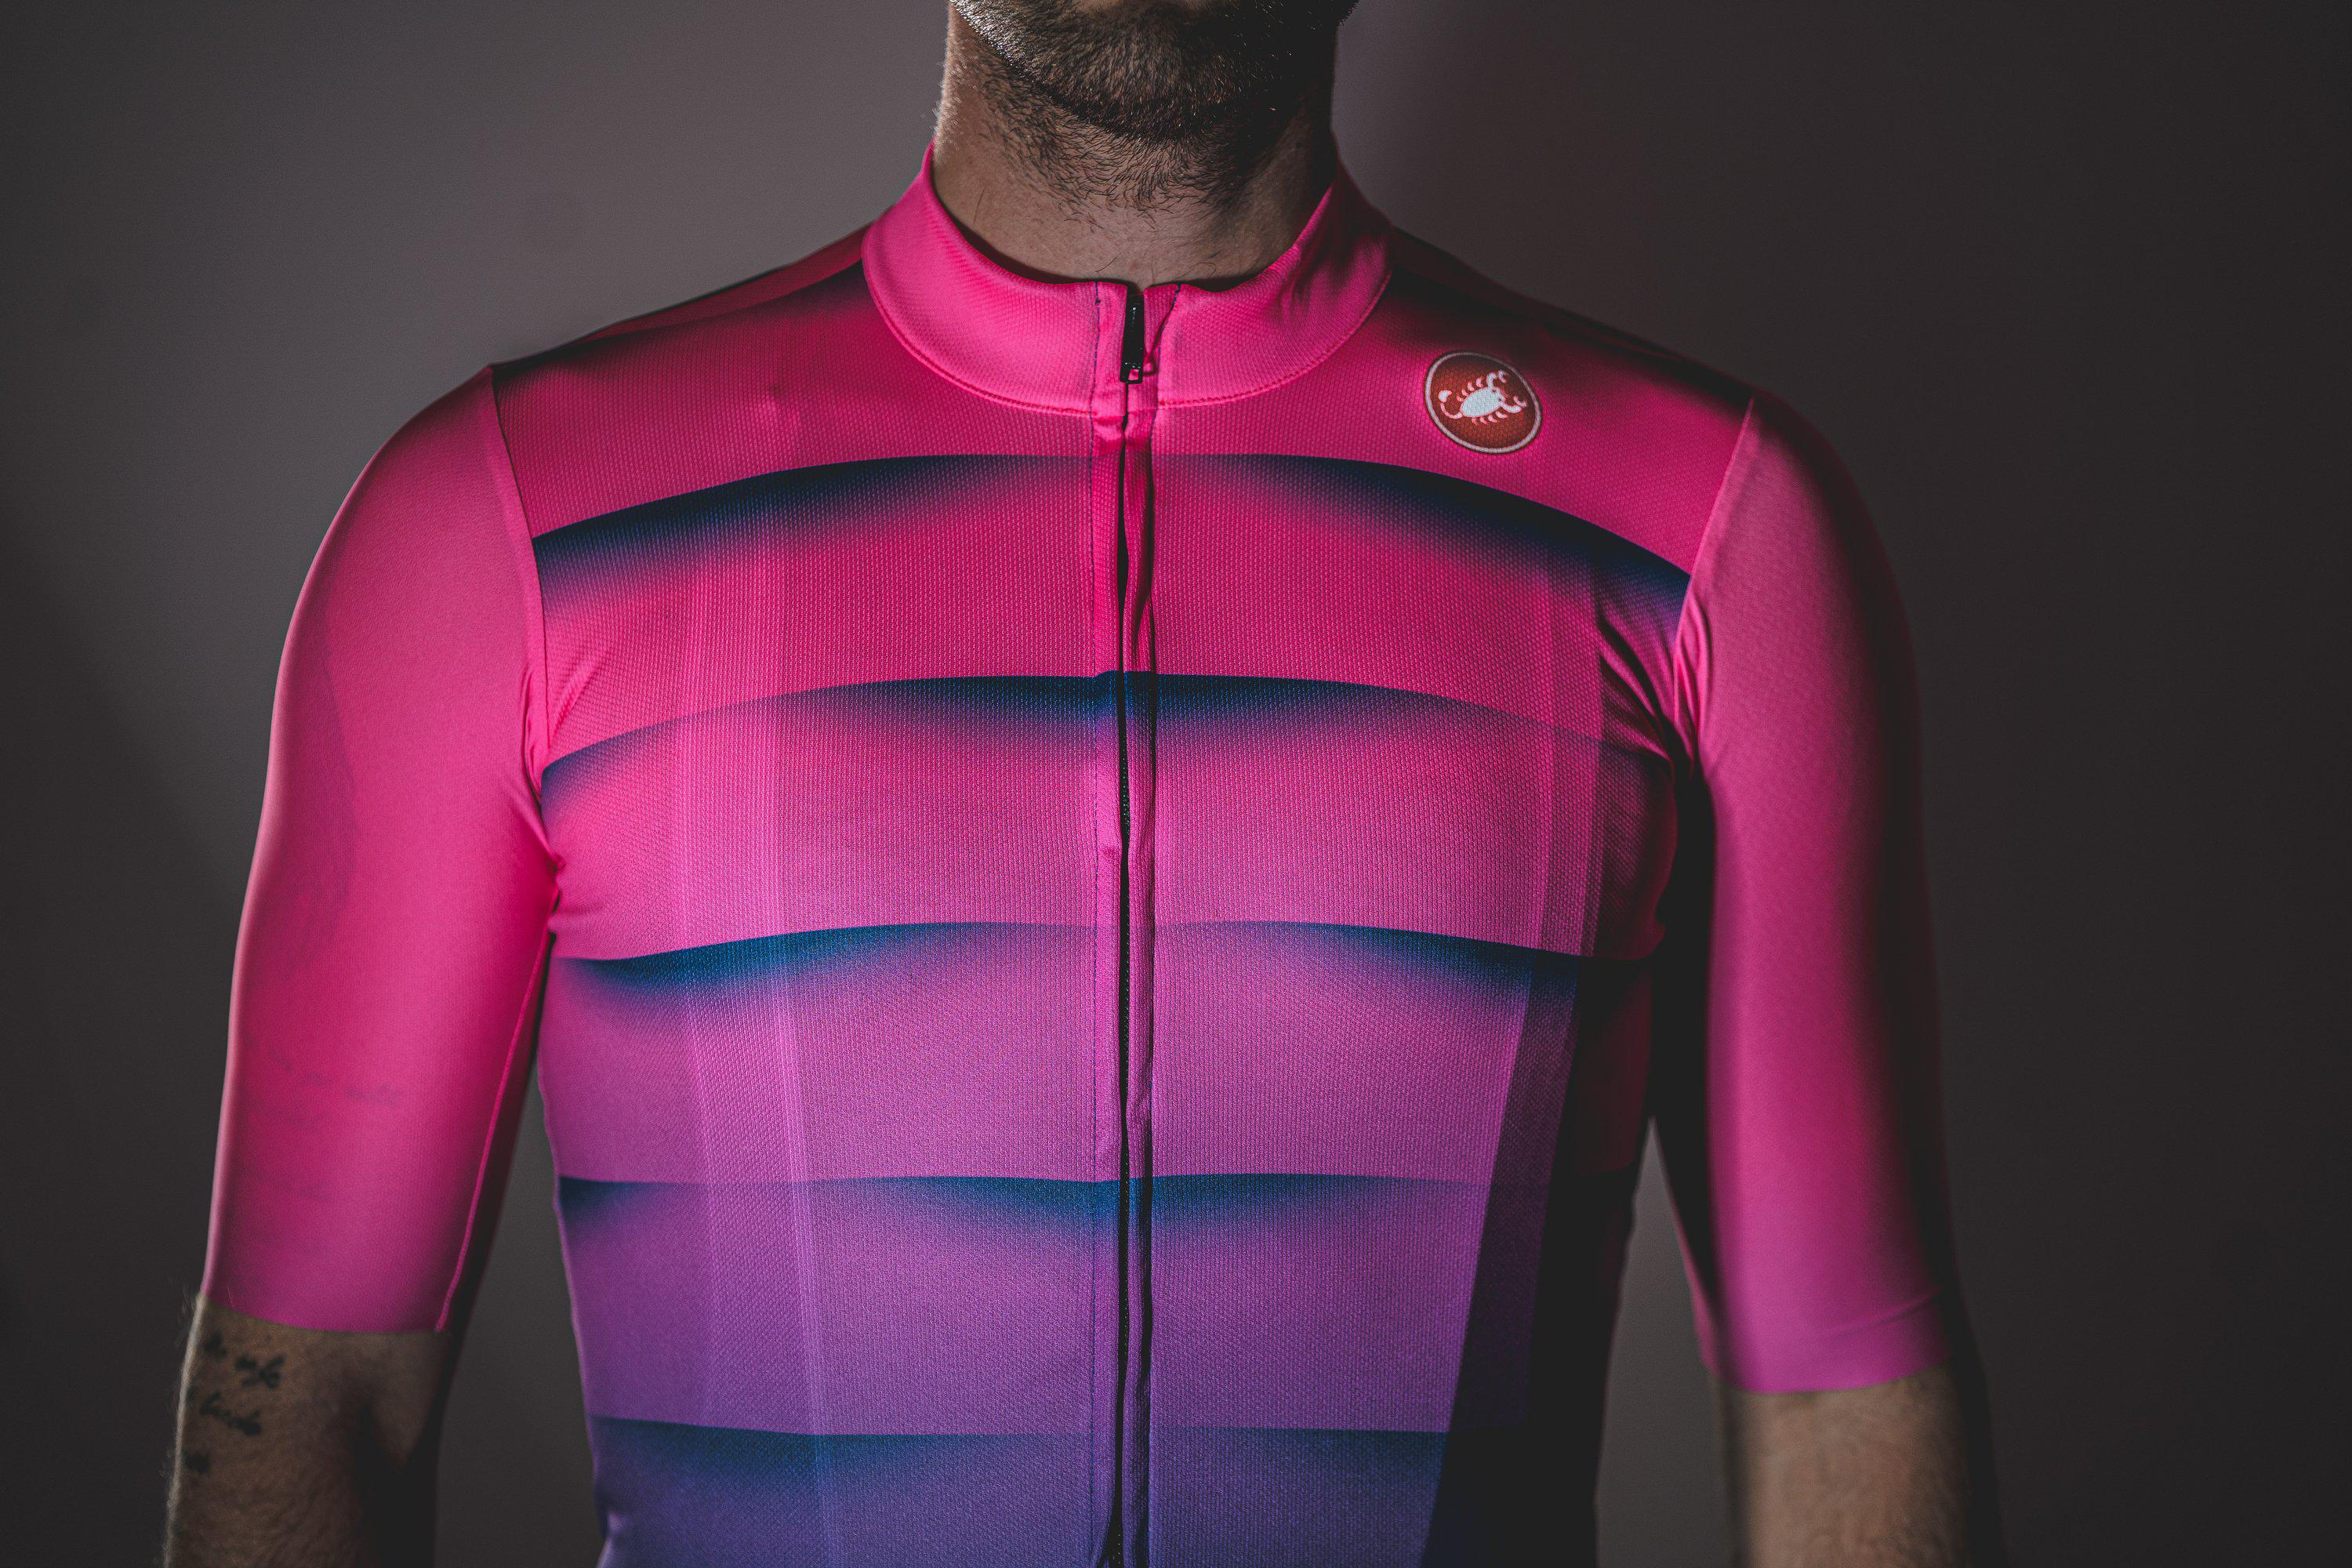 Castelli-Castelli World Champs Squadra Jersey - Neon Fade--saddleback-elite-performance-cycling